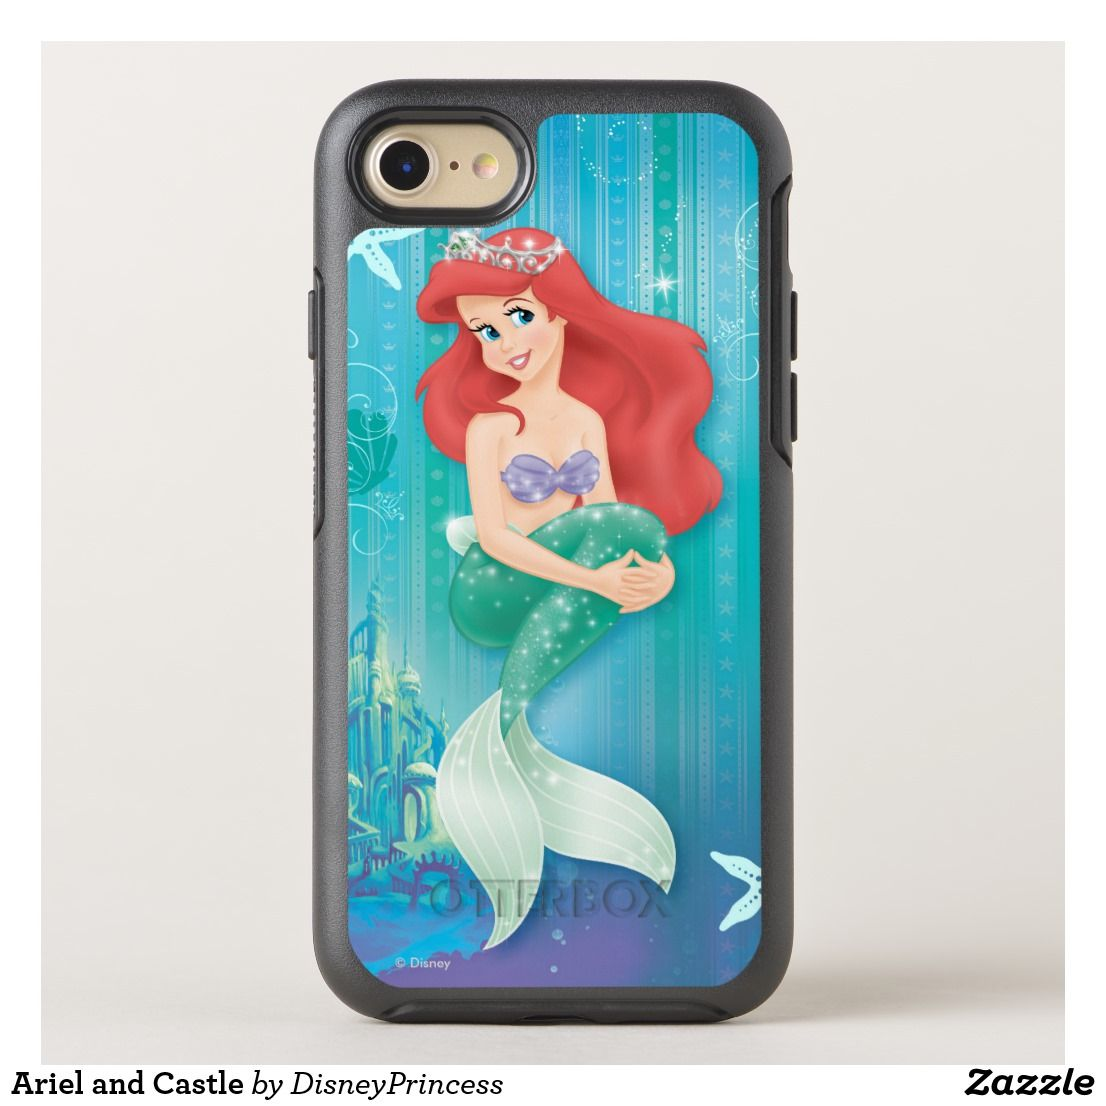 DISNEY THE LITTLE MERMAID ARIEL AND FRIENDS iphone case